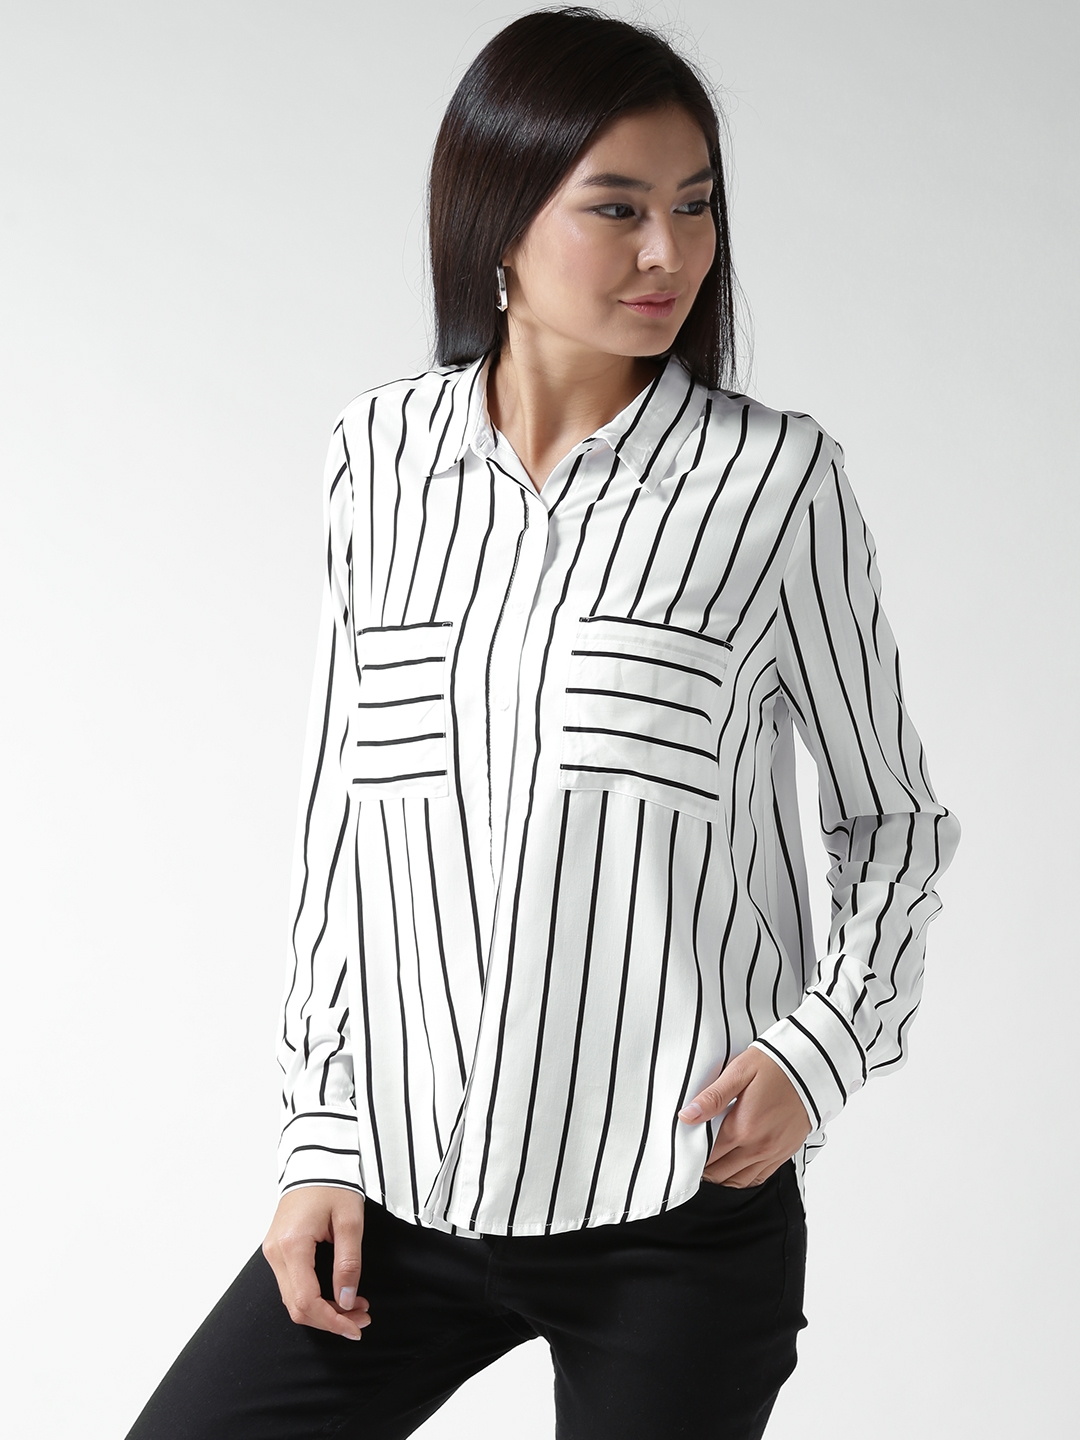 d24f4426a8a Buy FOREVER 21 Women Black   White Striped Casual Shirt - Shirts for ...